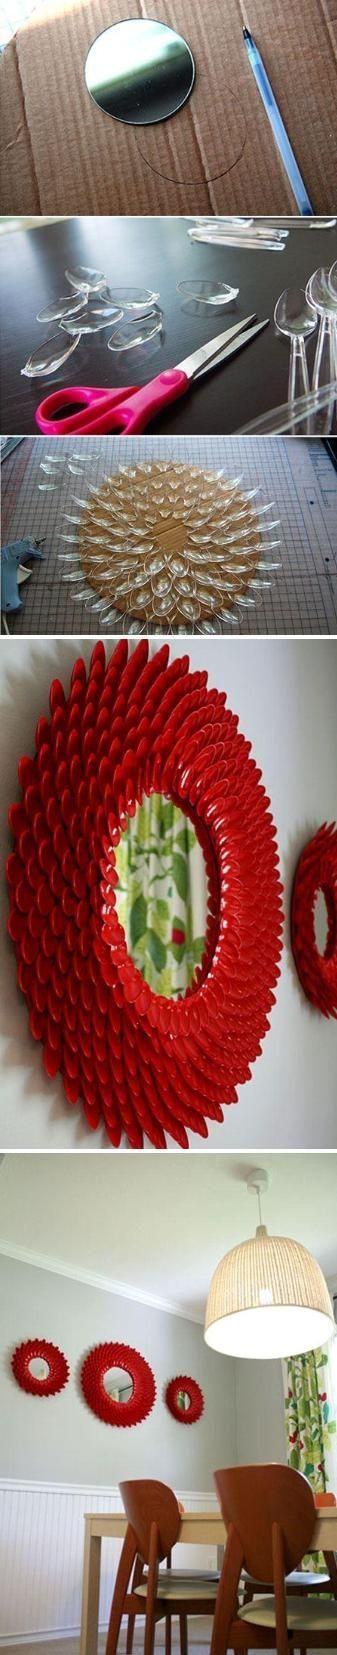 Make a Mirror from Plastic Spoon diy